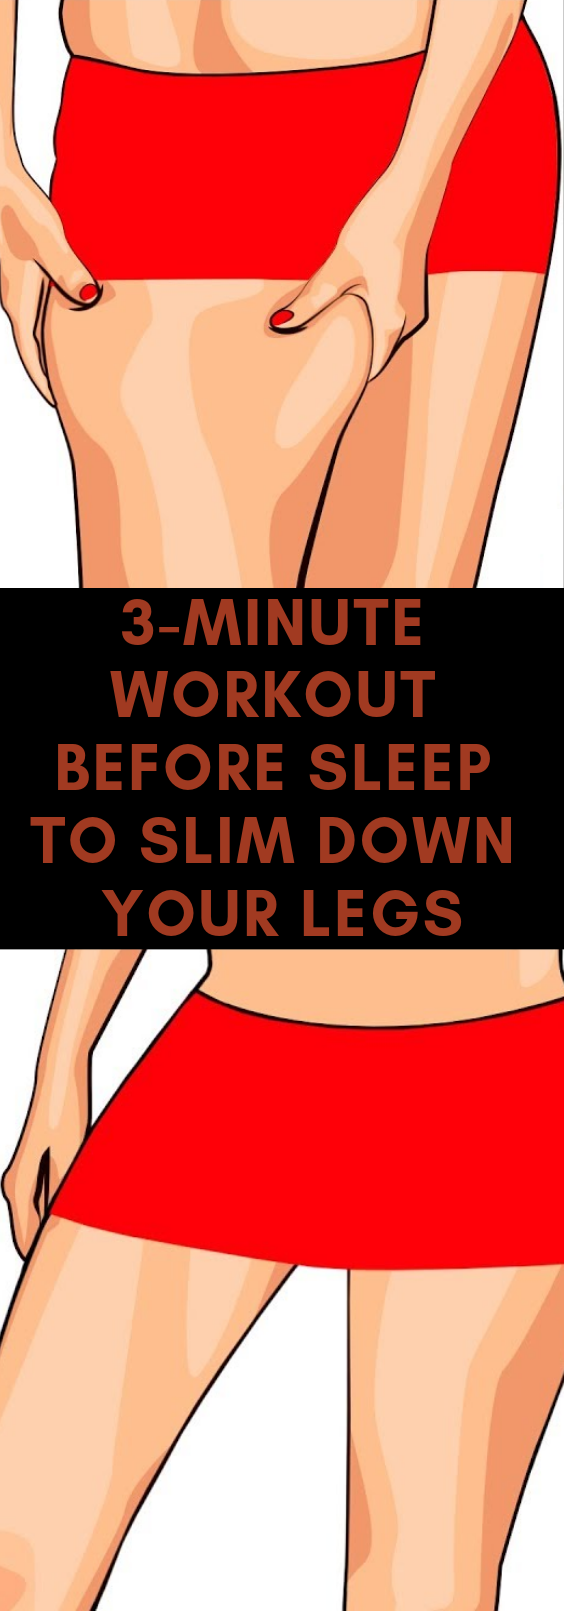 3-Minute Workout Before Sleep to Slim Down Your Legs Lose Weight In Legs Fast! This 3-Minute Workout Just Before Sleep Will Help to Slim Down Your Legs.